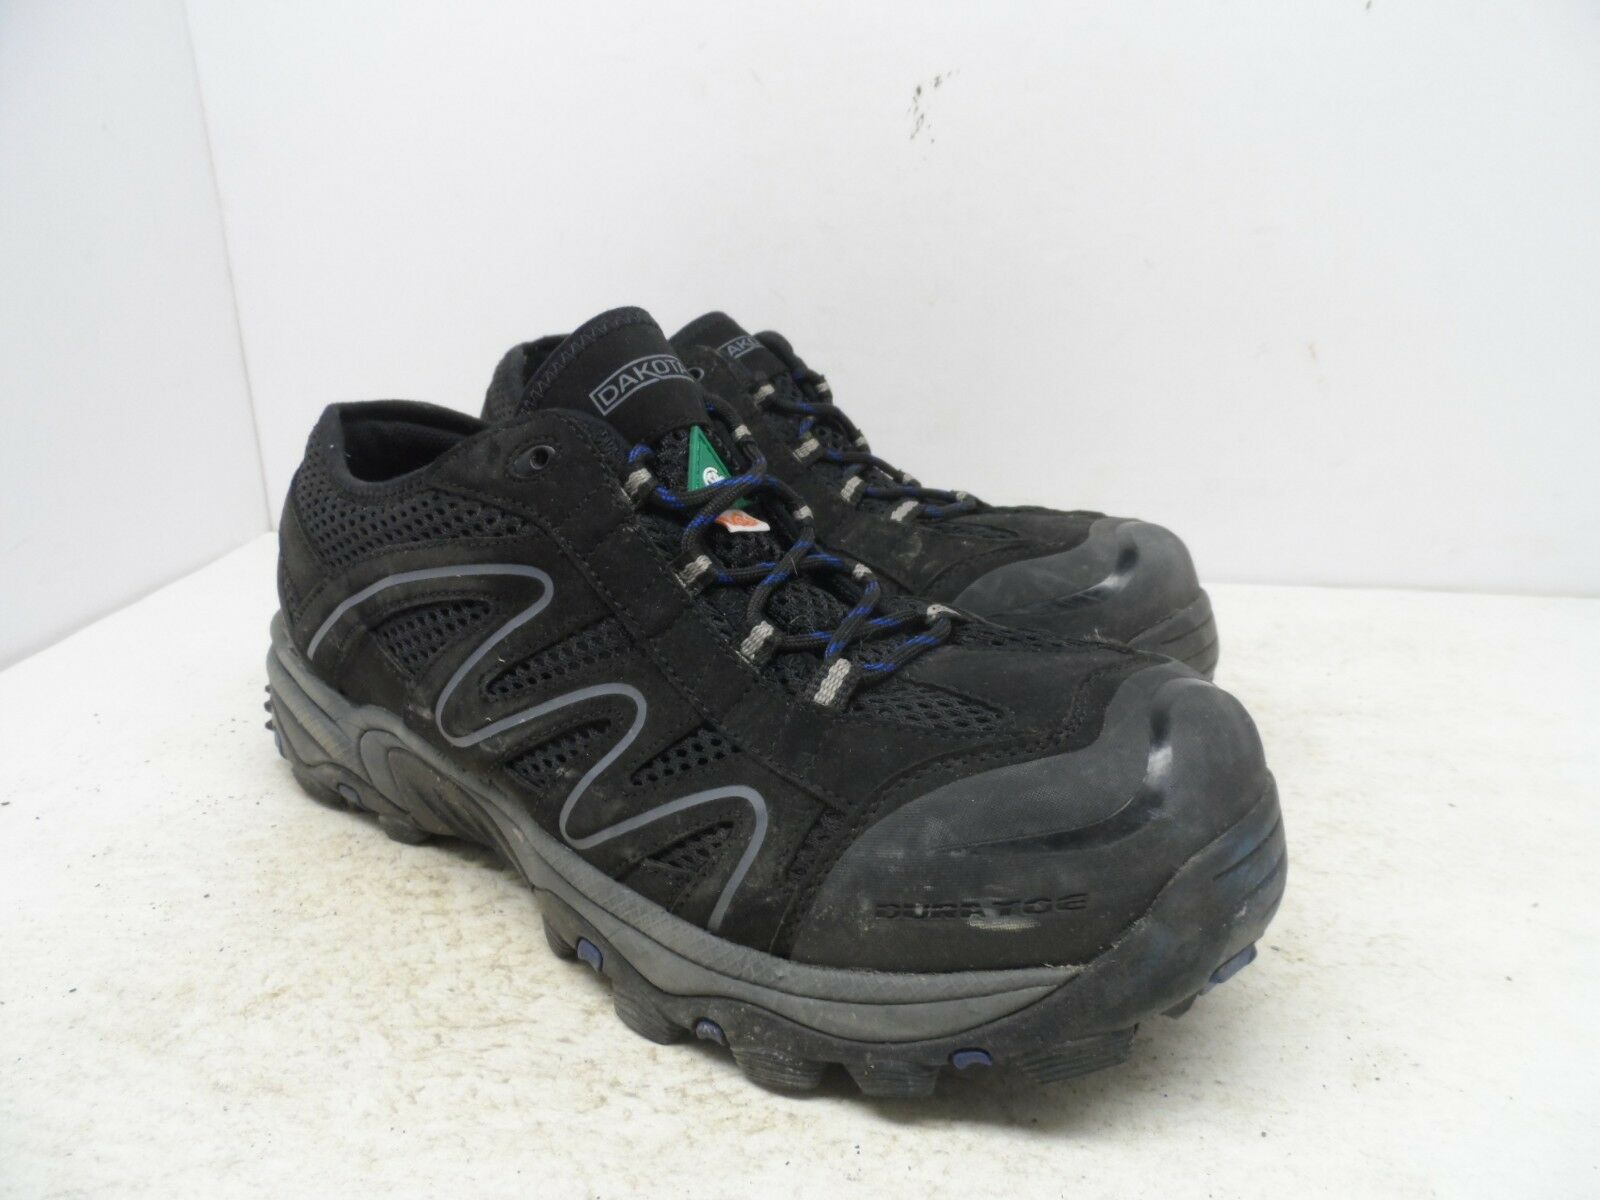 DAKOTA Men's Low-Cut Quad Comfort Steel Toe Steel Plate Yard shoes Black 10.5EE